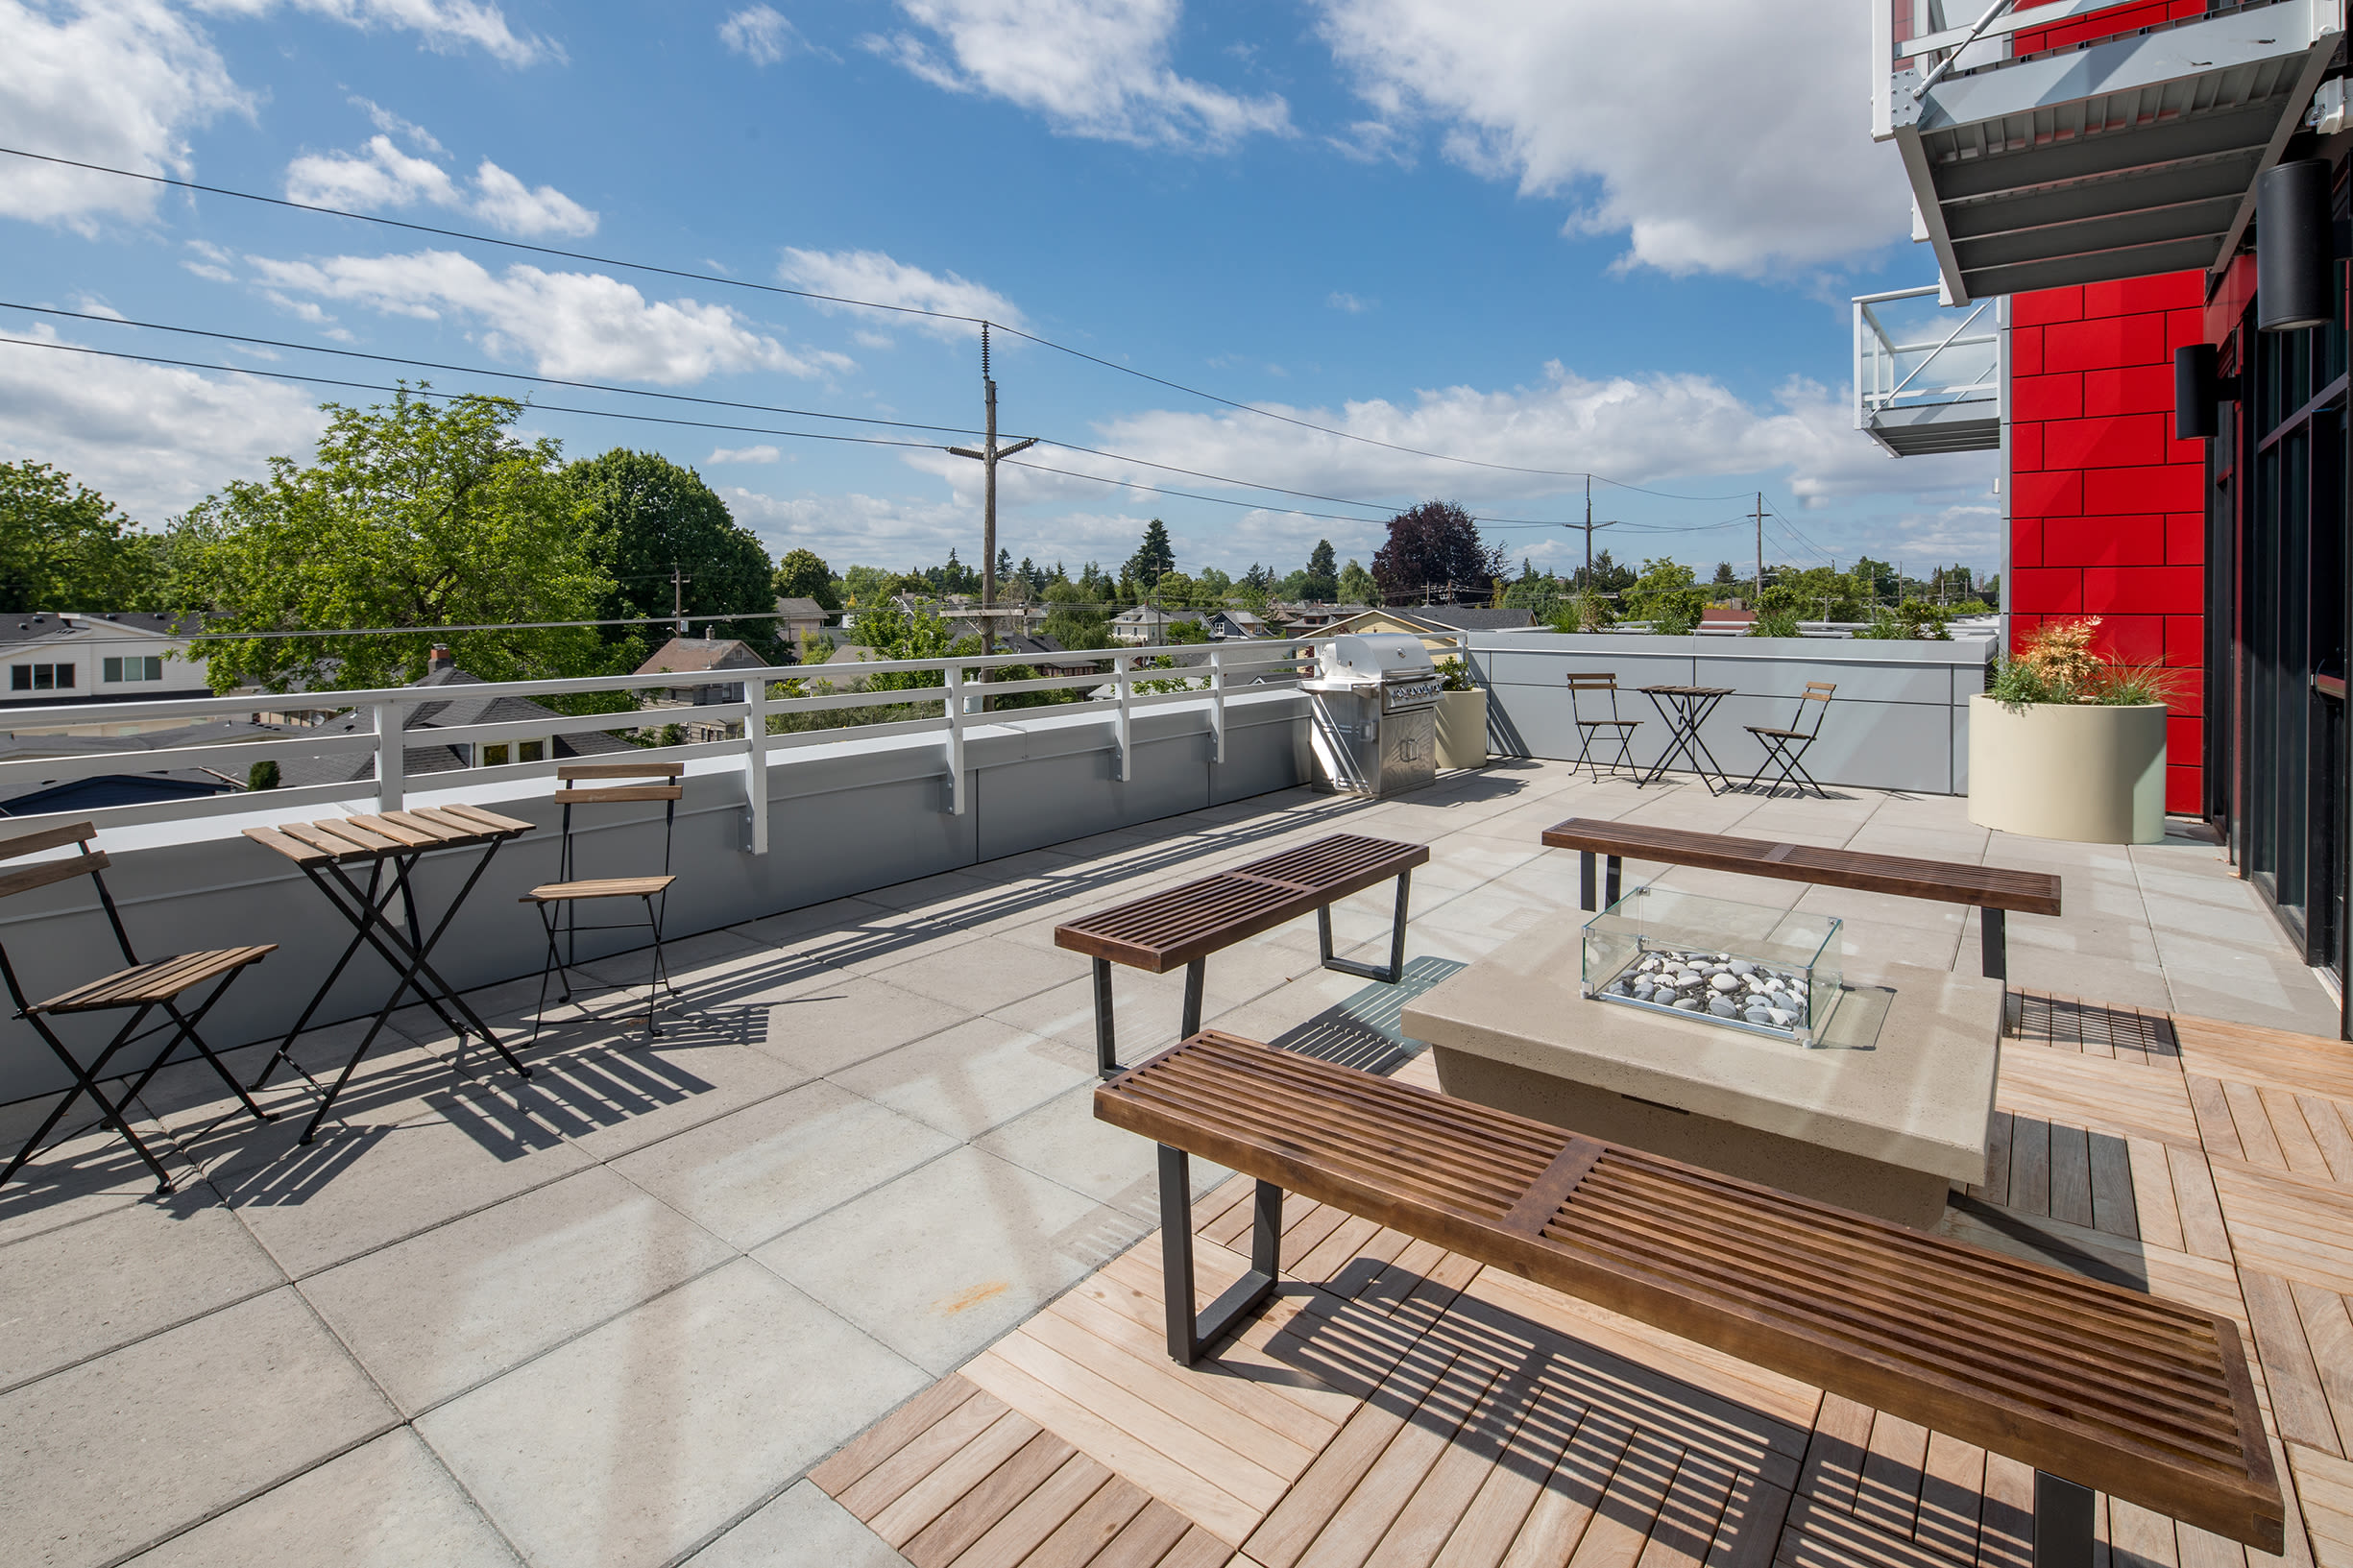 More outdoor seating at Ascend in Portland, OR